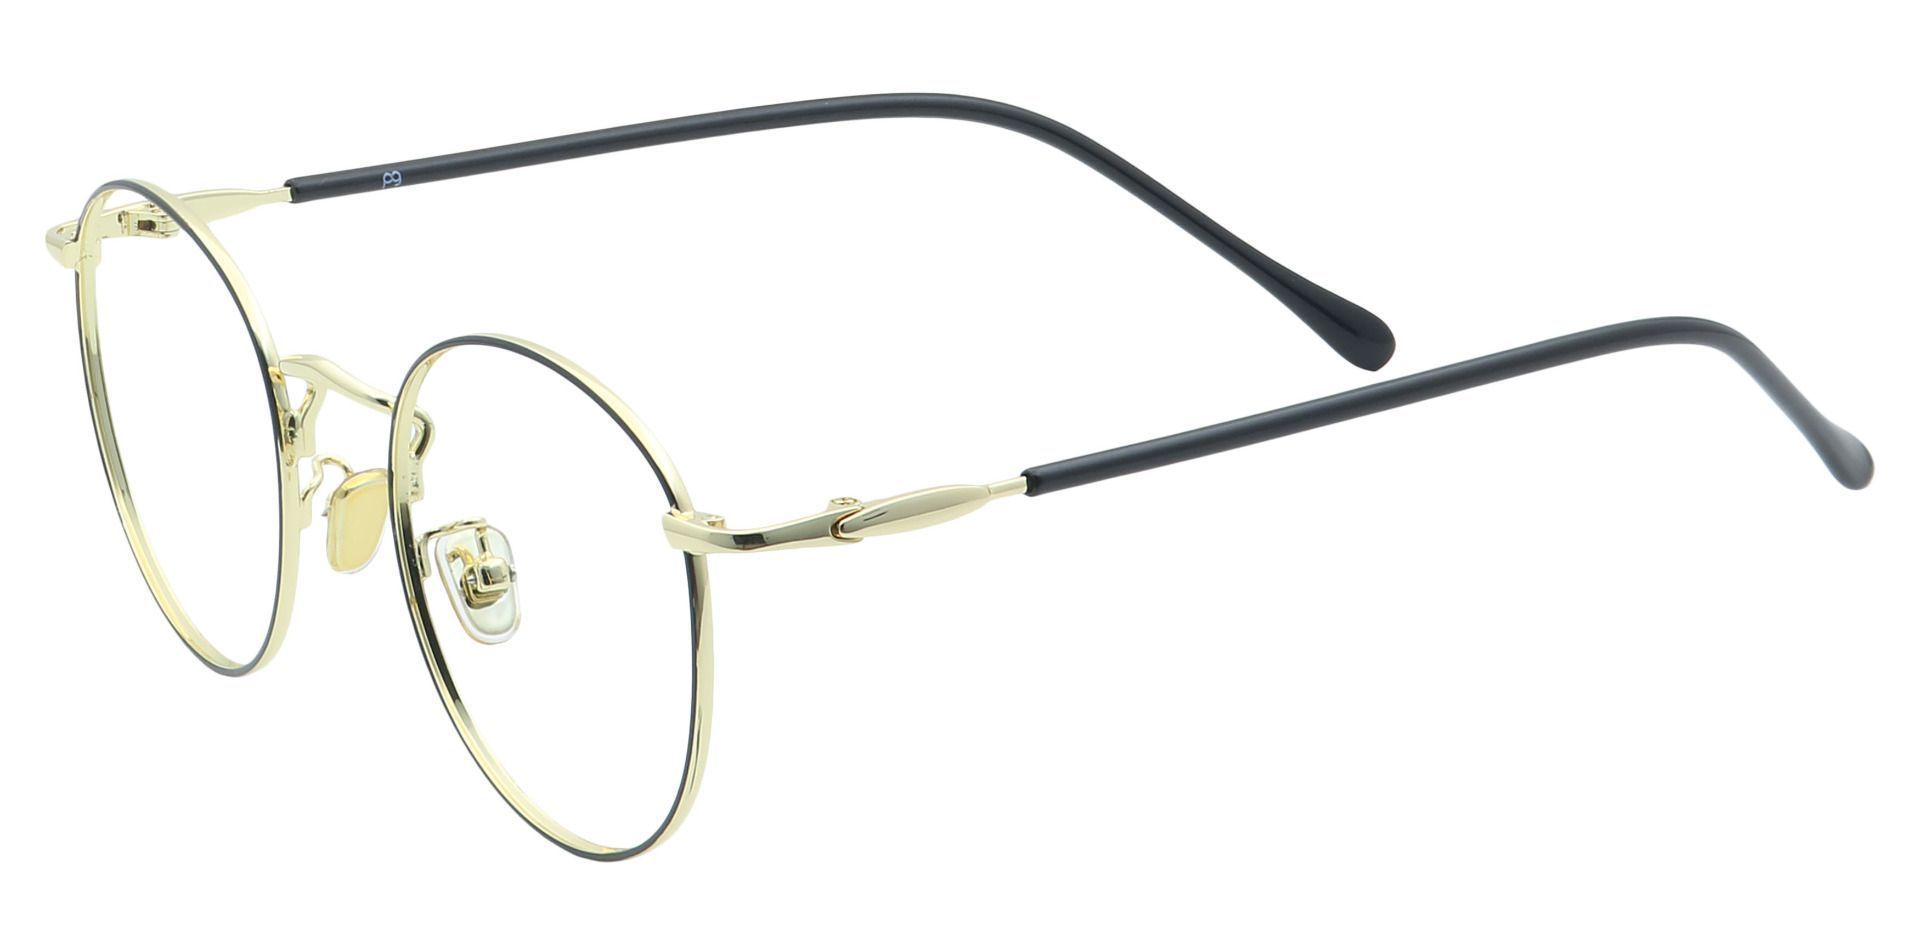 Metro Round Prescription Glasses - Black